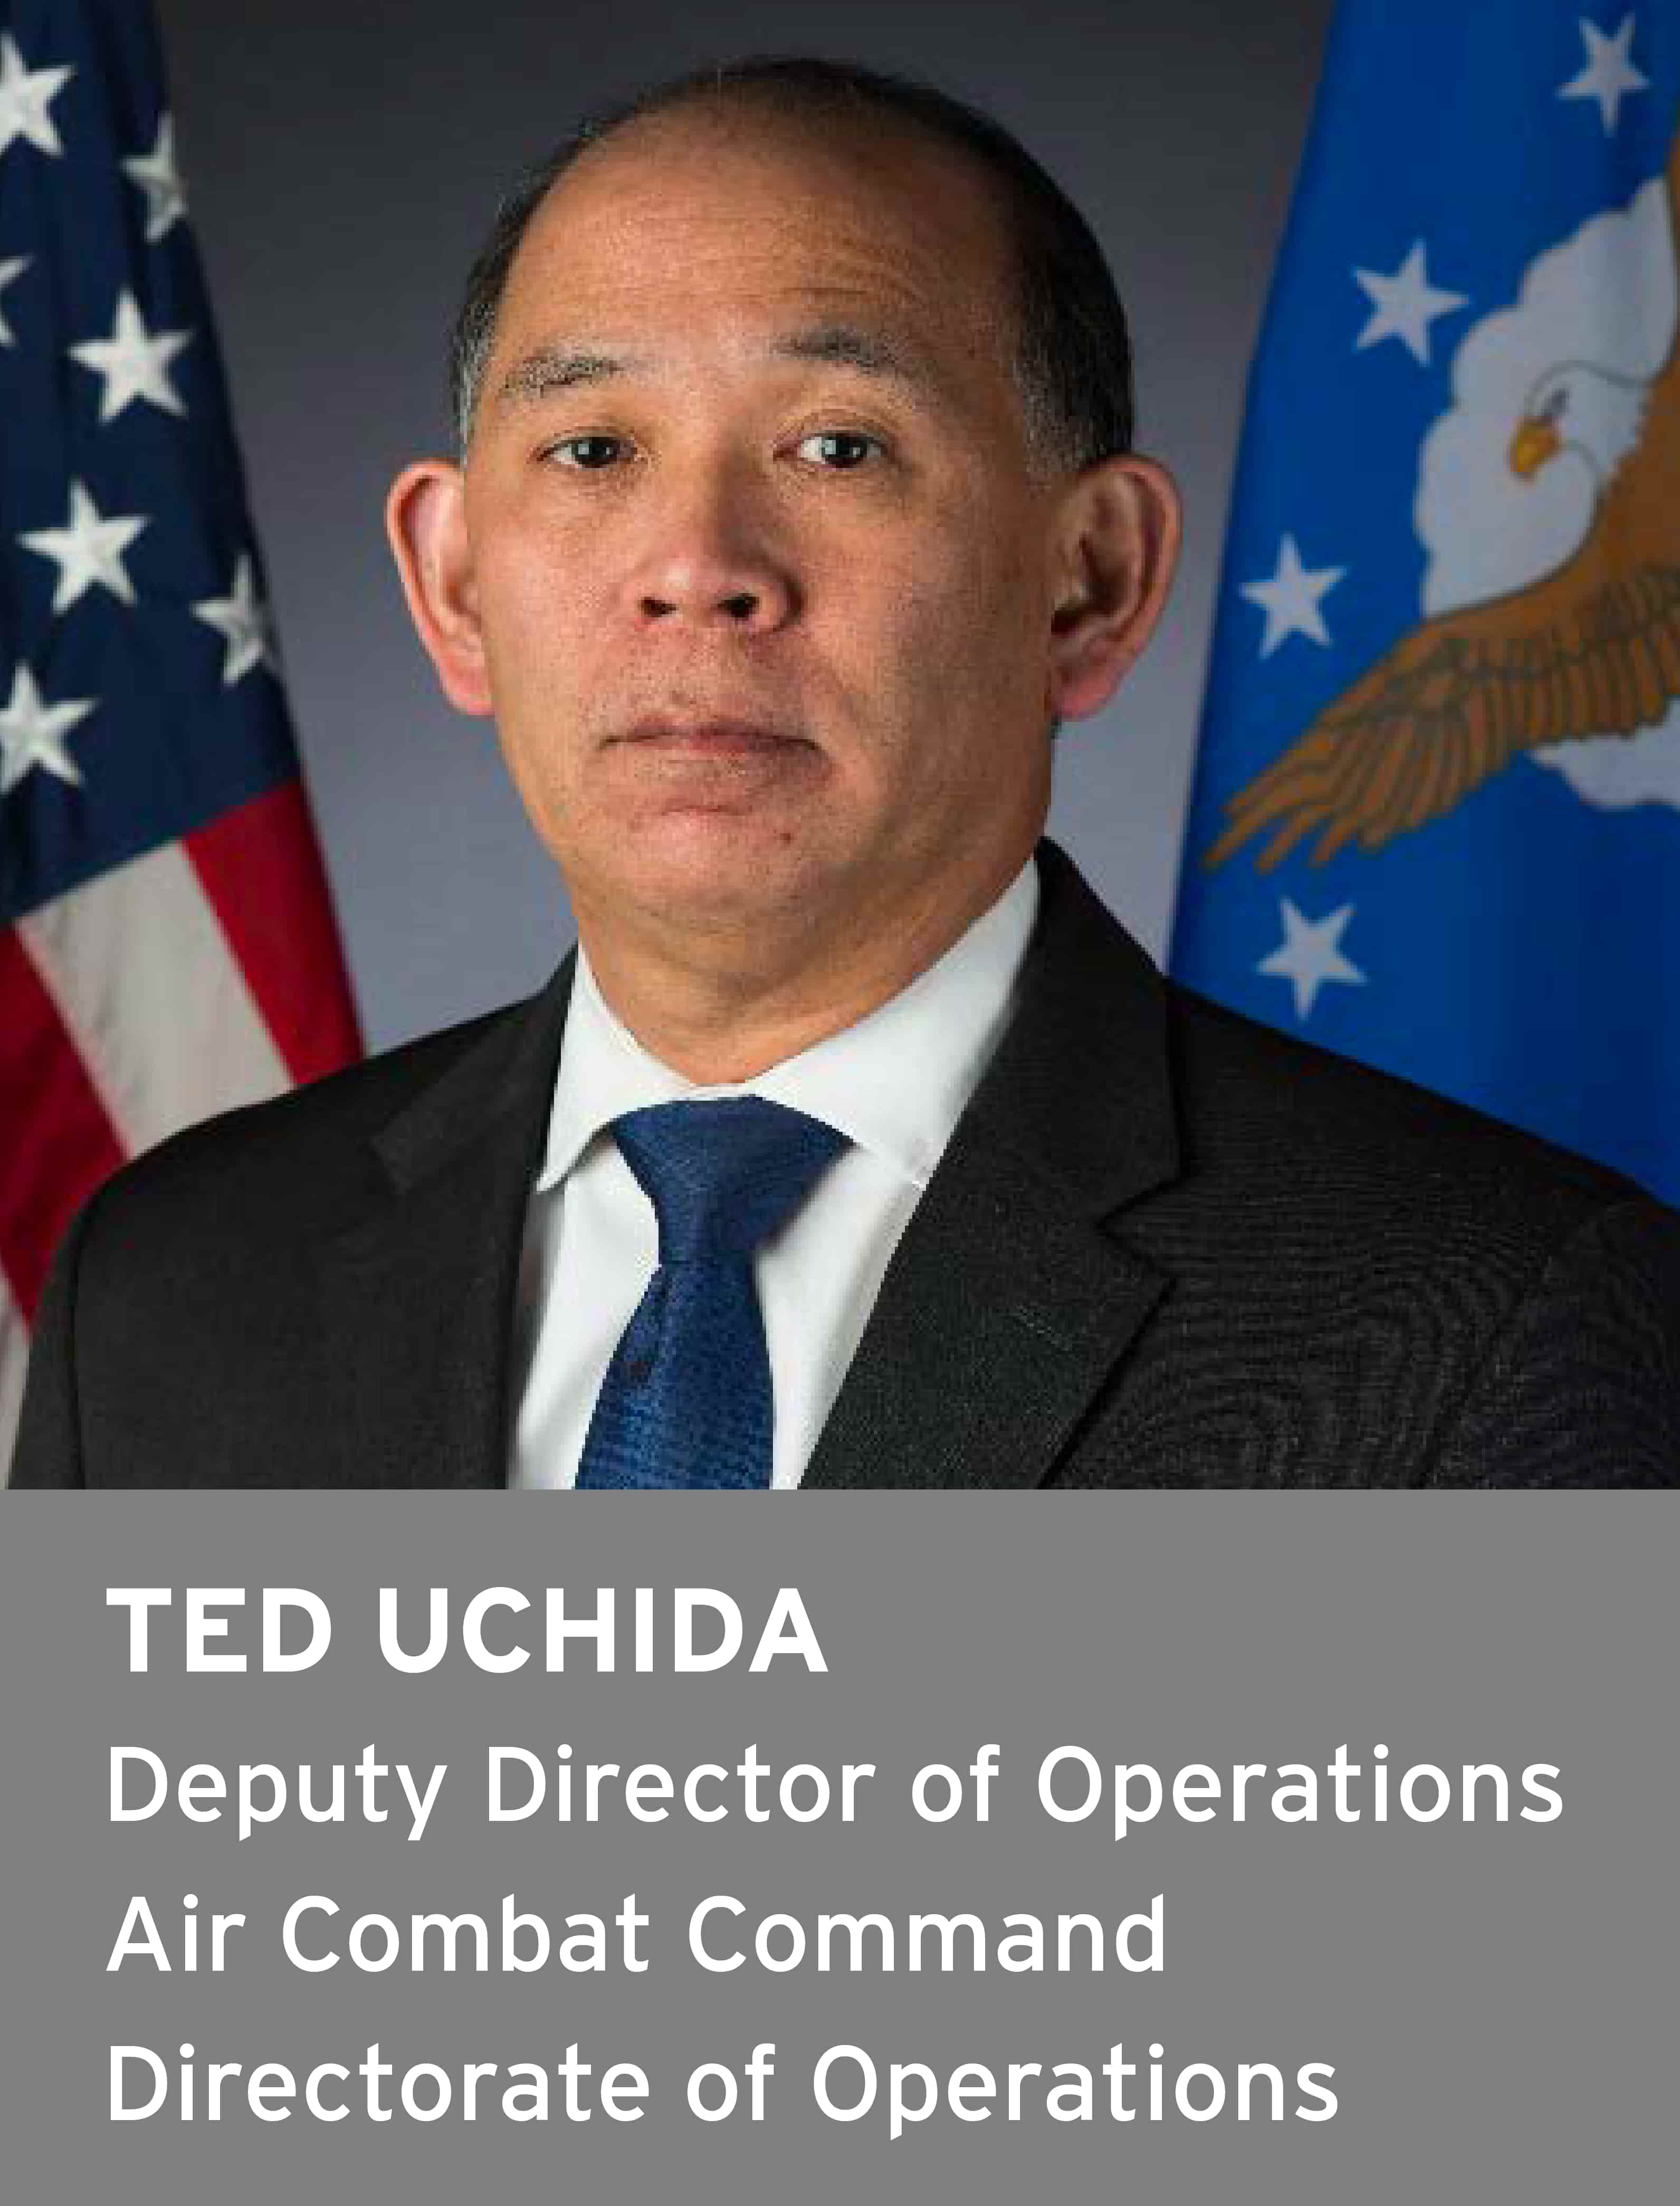 Ted Uchida, Deputy Director of Operations, Air Combat Command Directorate of Operations